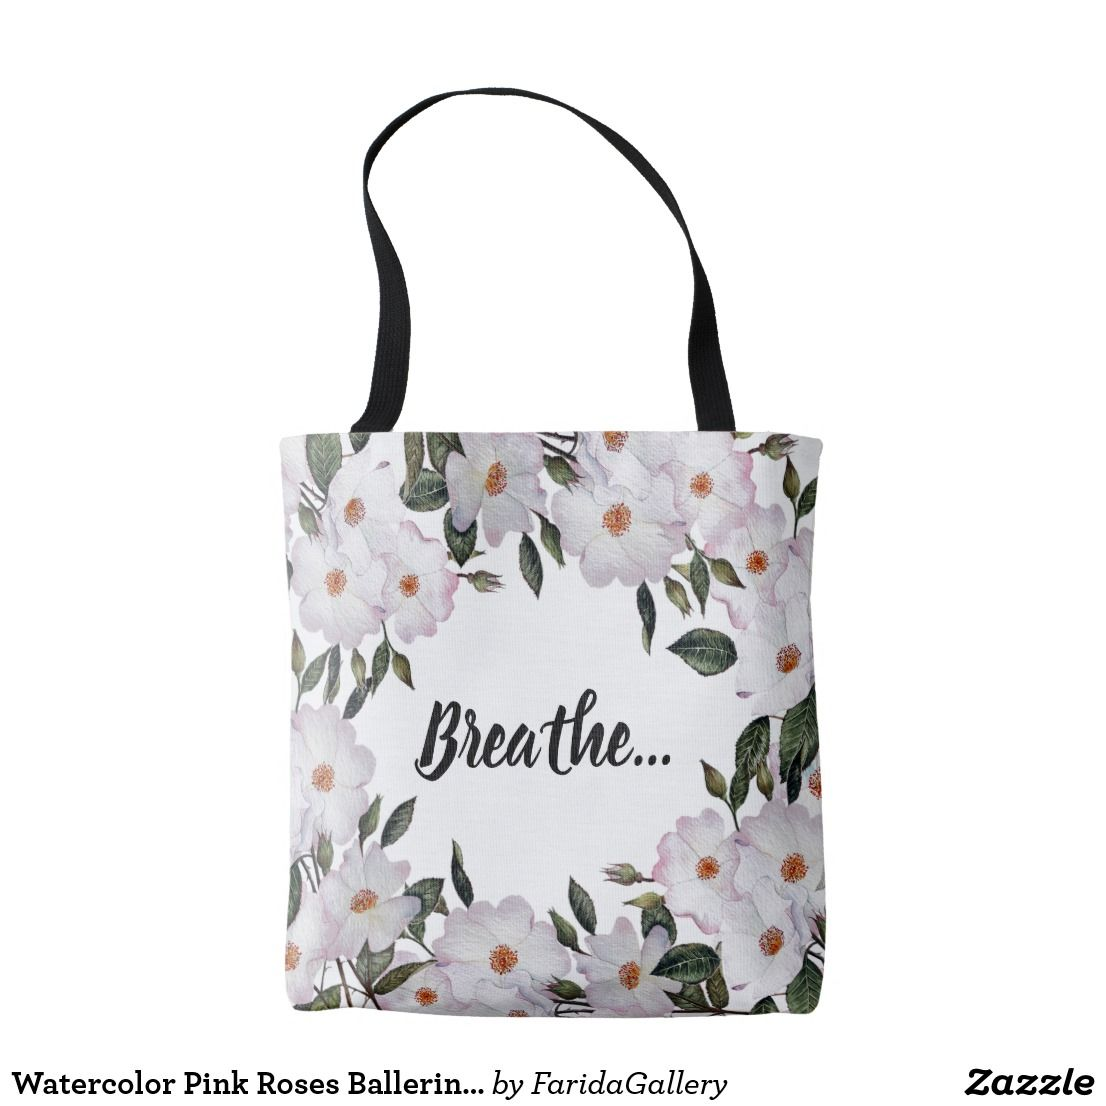 Watercolor Pink Roses Ballerina Floral Design Tote Bag Zazzle